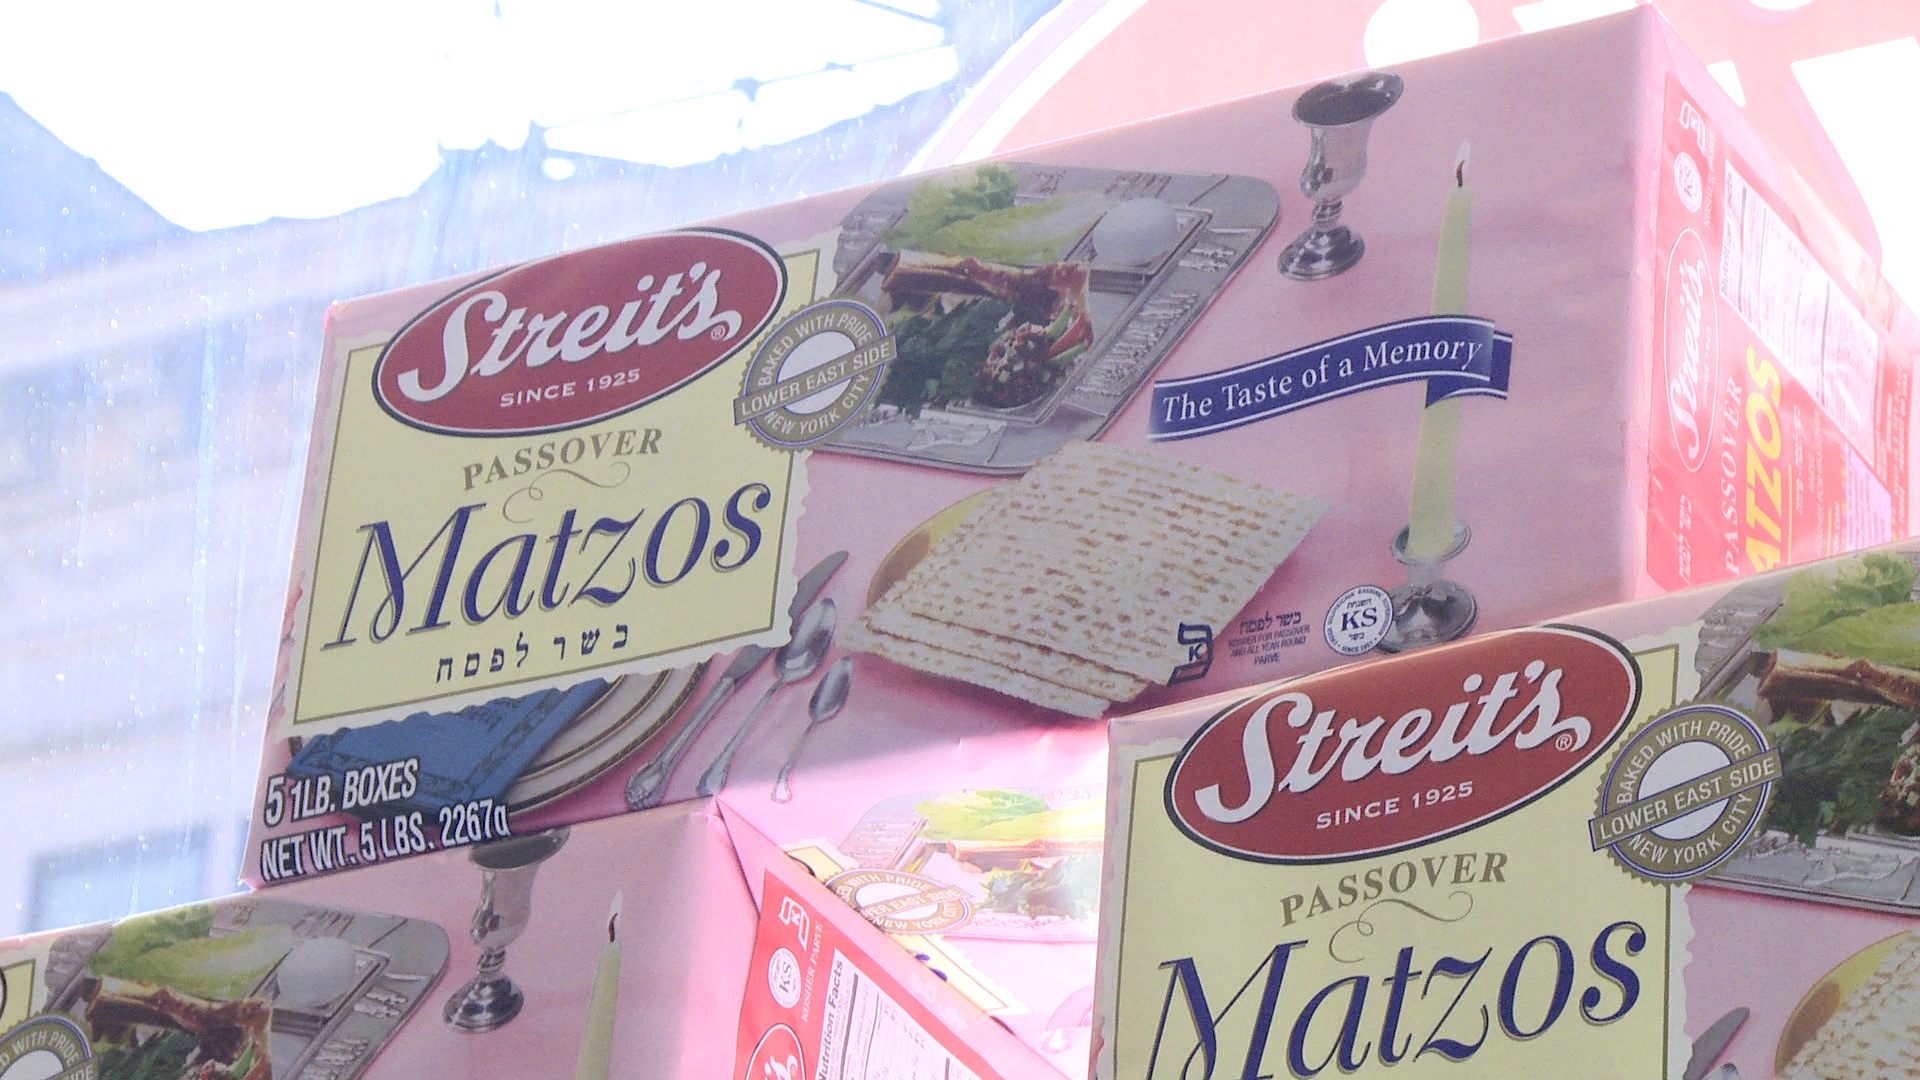 Manhattan matzo factory to close after 90 years